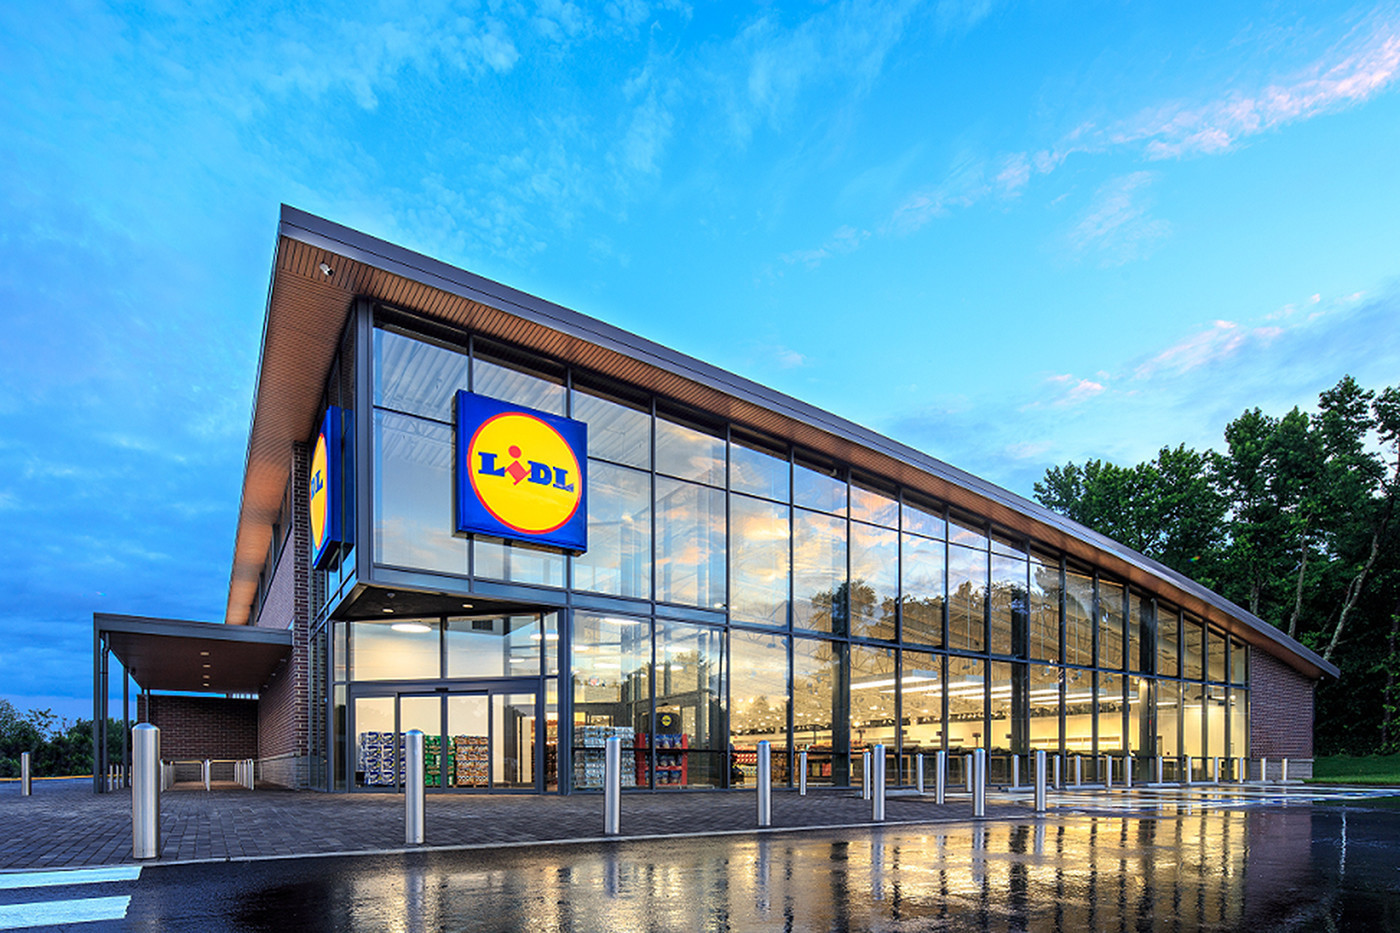 Lidl grocery store chain to begin hiring in Newport News, Hampton - Daily Press